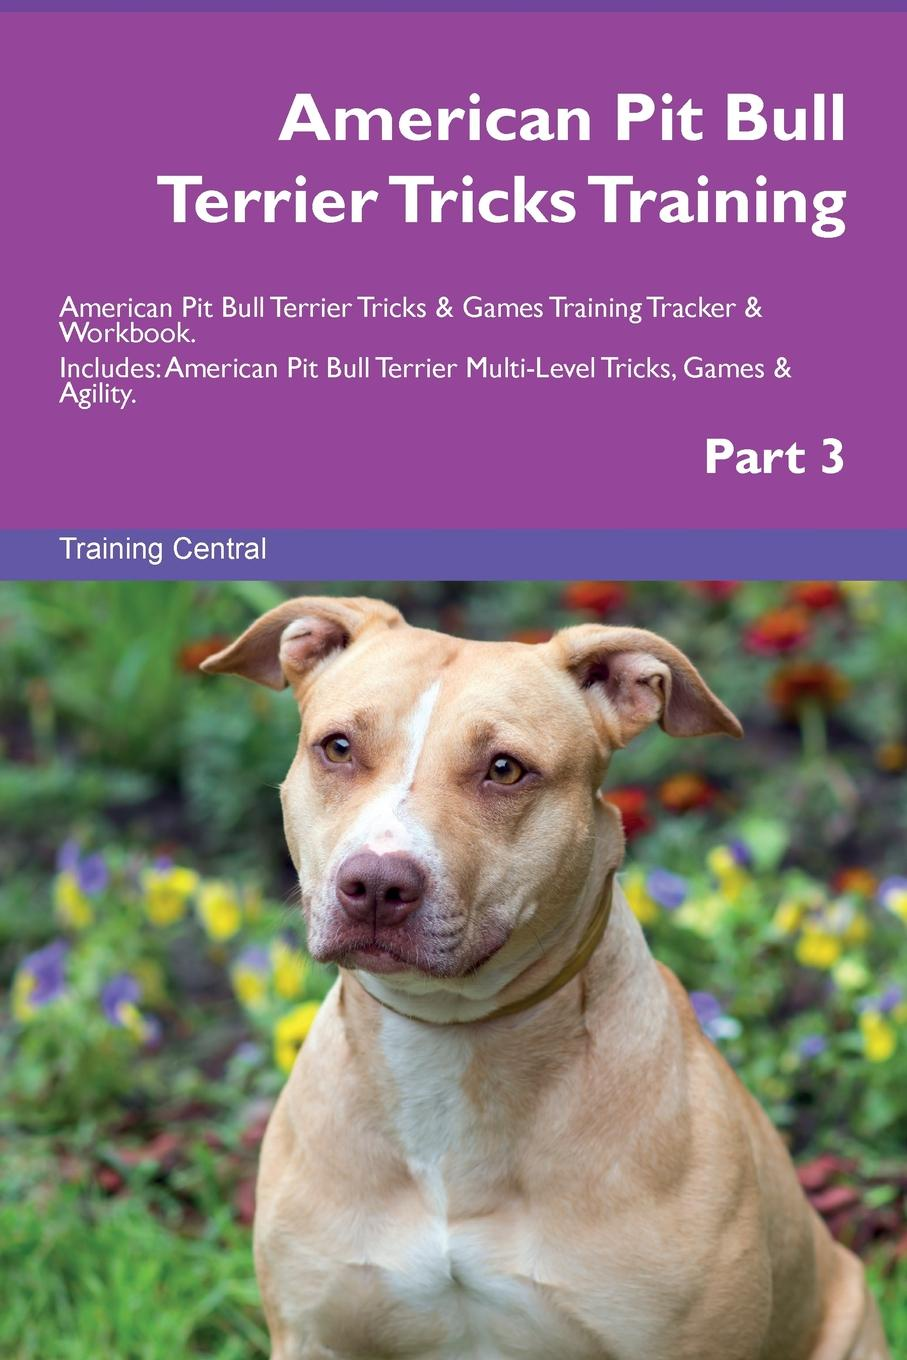 Training Central American Pit Bull Terrier Tricks Training American Pit Bull Terrier Tricks . Games Training Tracker . Workbook. Includes. American Pit Bull Terrier Multi-Level Tricks, Games . Agility. Part 3